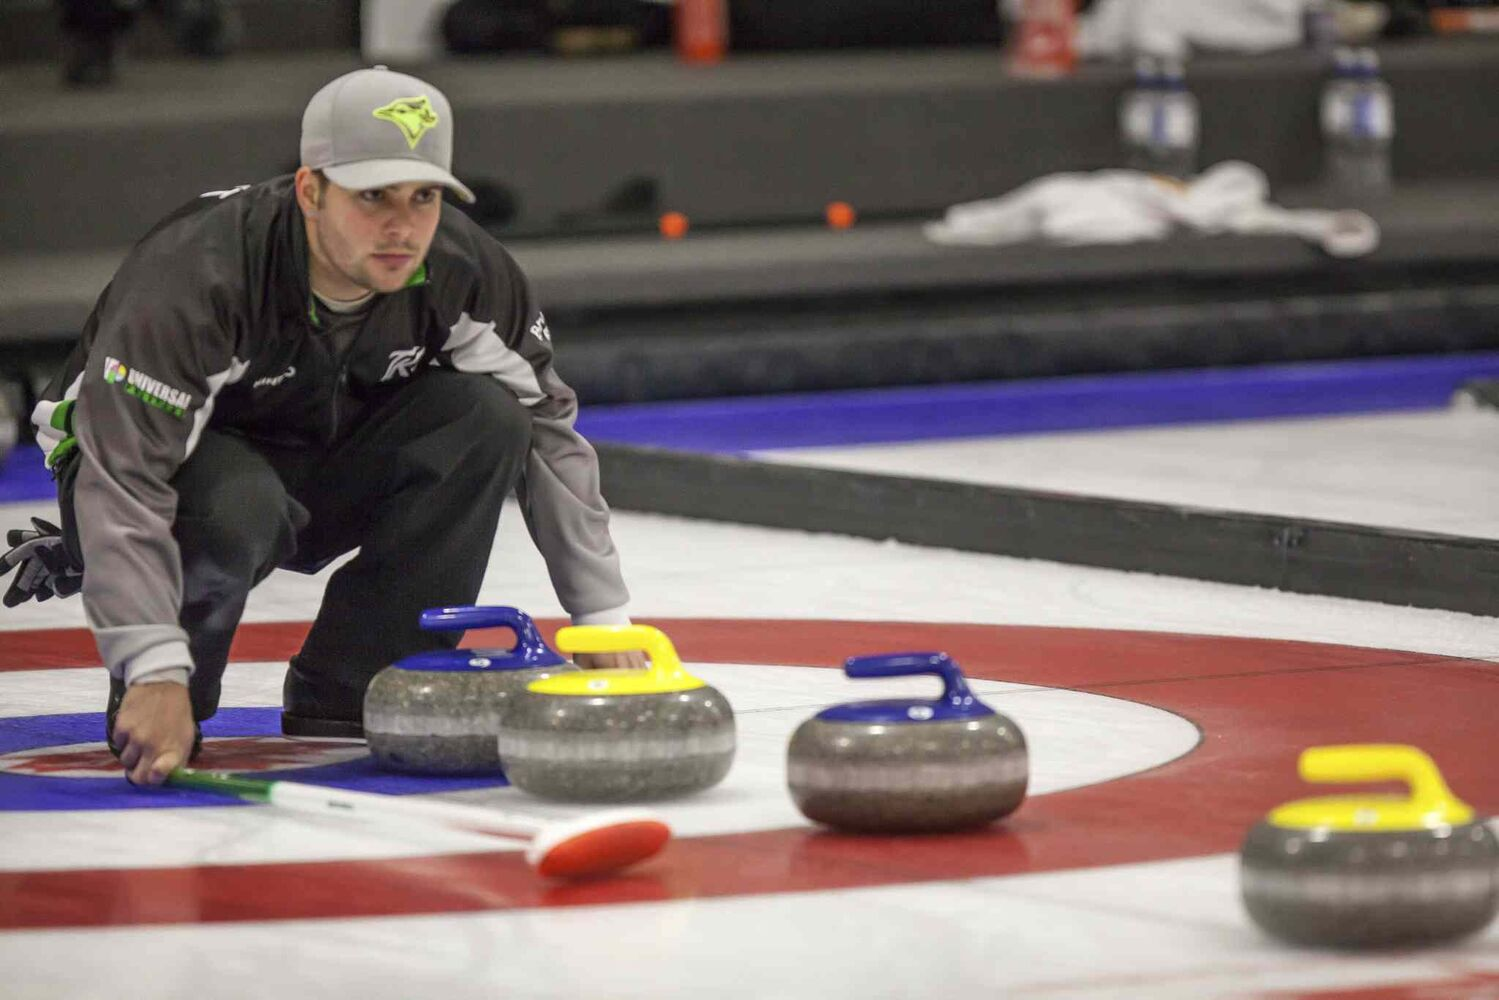 Travis Fanset, of Team Kean examines rocks lined up in front of the button. (Greg Gallinger / Winnipeg Free Press)